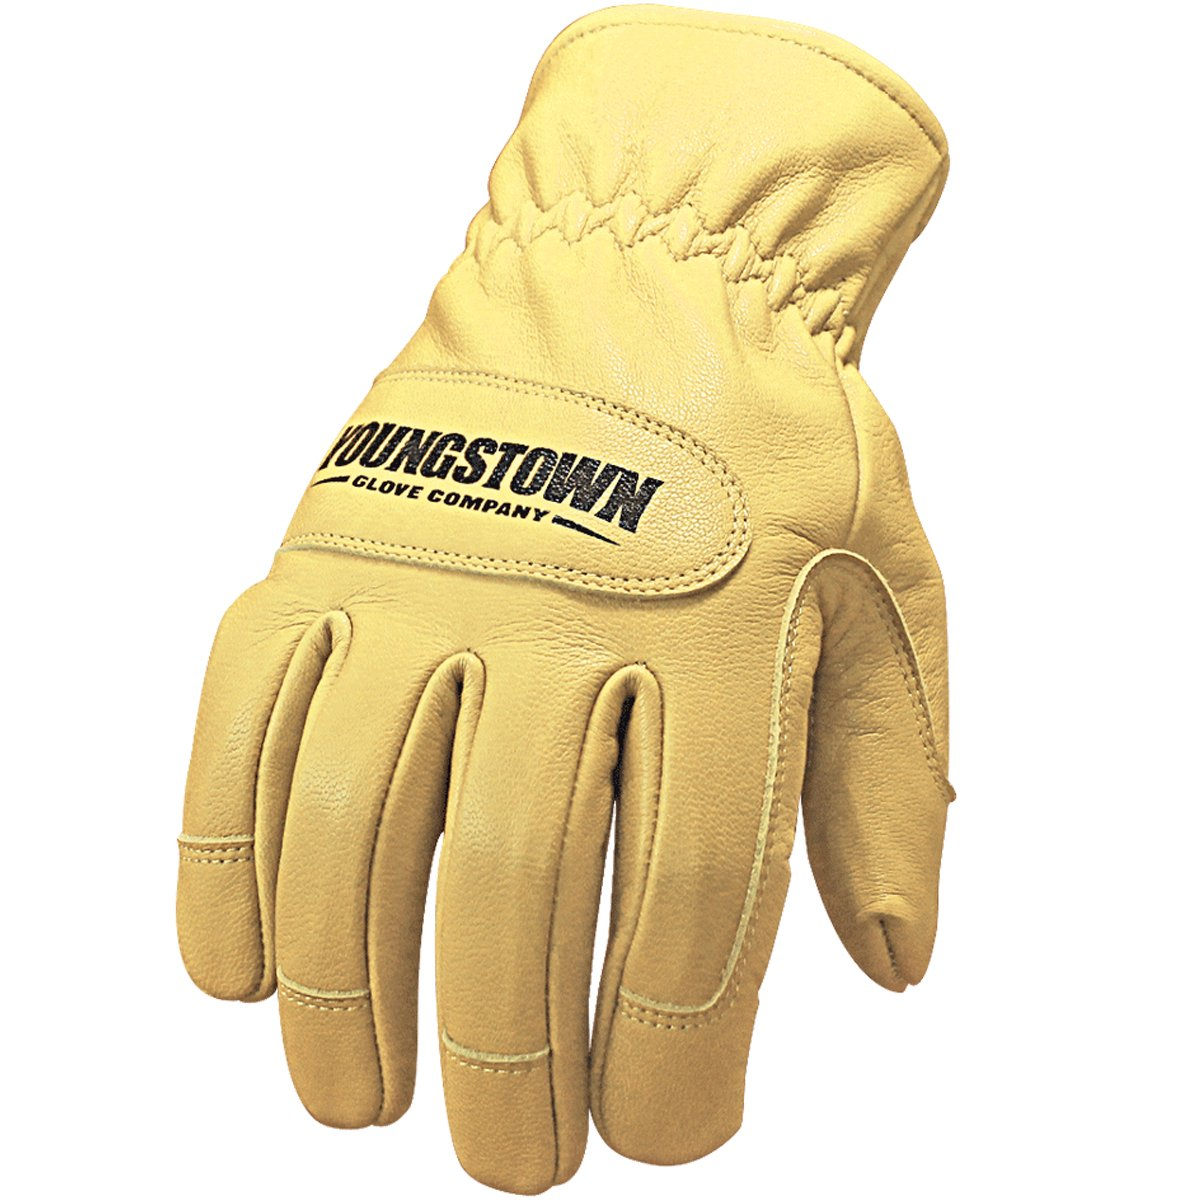 Youngstown Glove 12-3265-60-L Ground Glove Performance Work Gloves, Large, Tan by Youngstown Glove Company (Image #1)